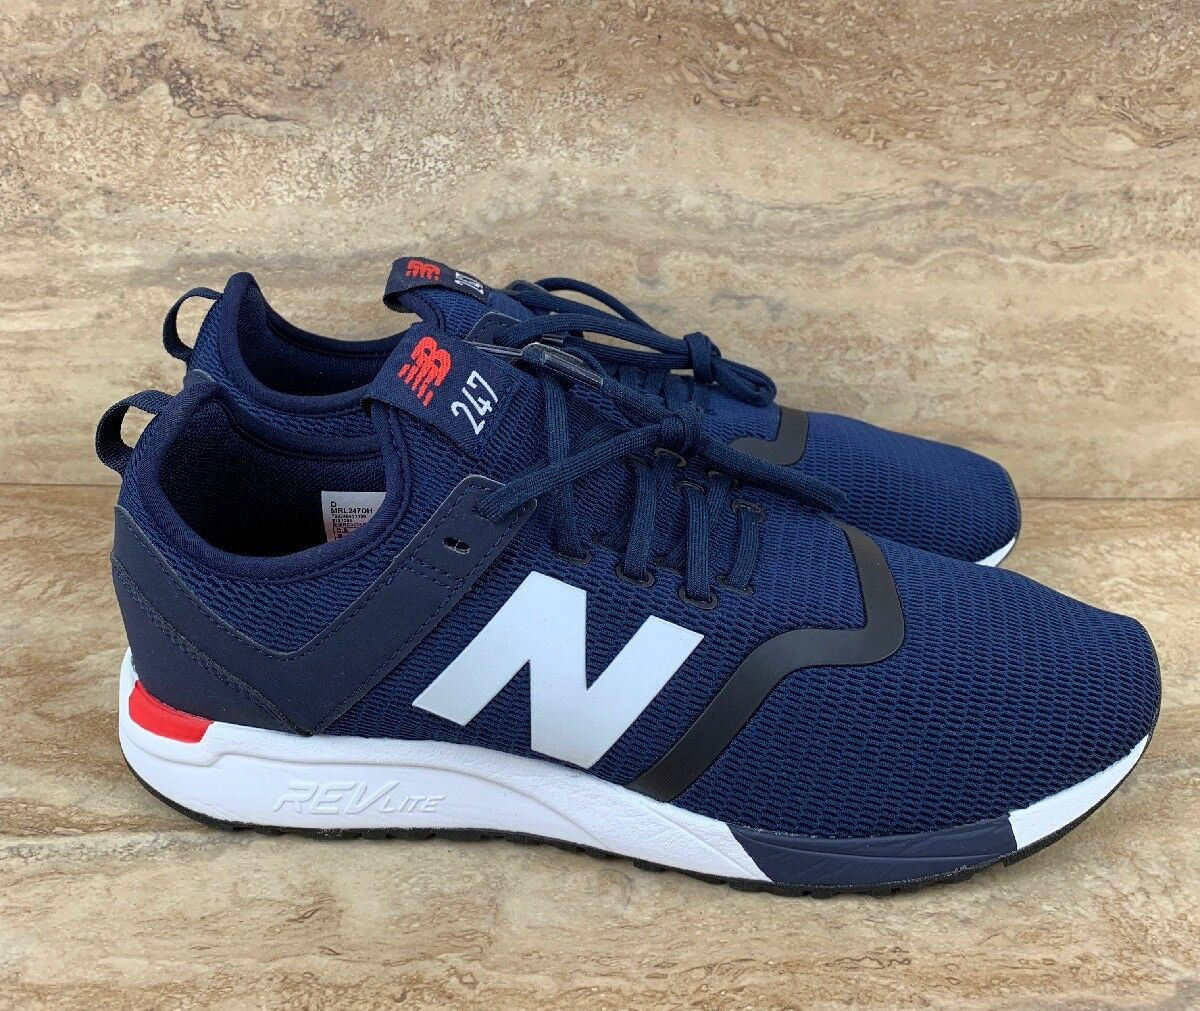 New Balance 247 Decon Men's shoes Navy White Red Running sneakers